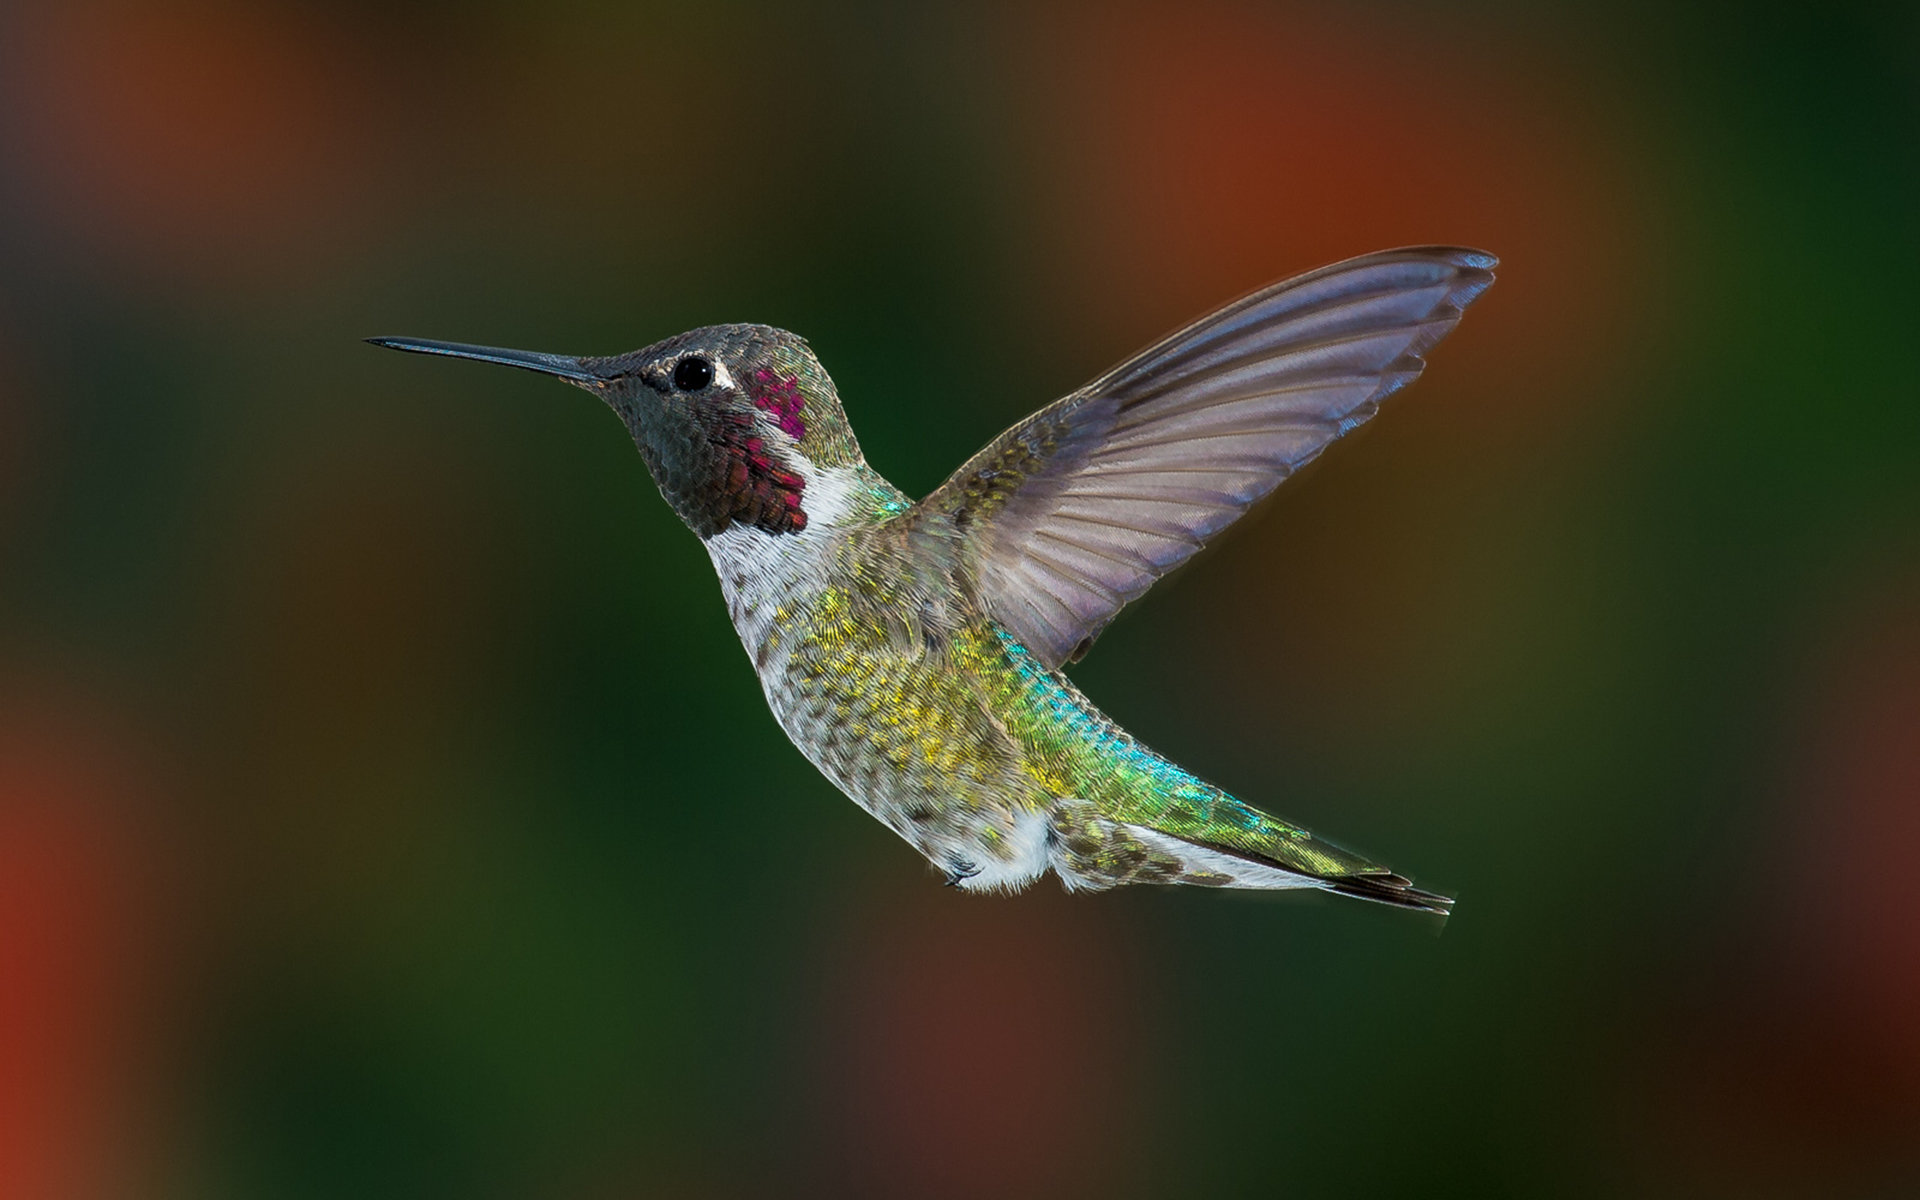 Download hd 1920x1200 Hummingbird PC background ID:215820 for free